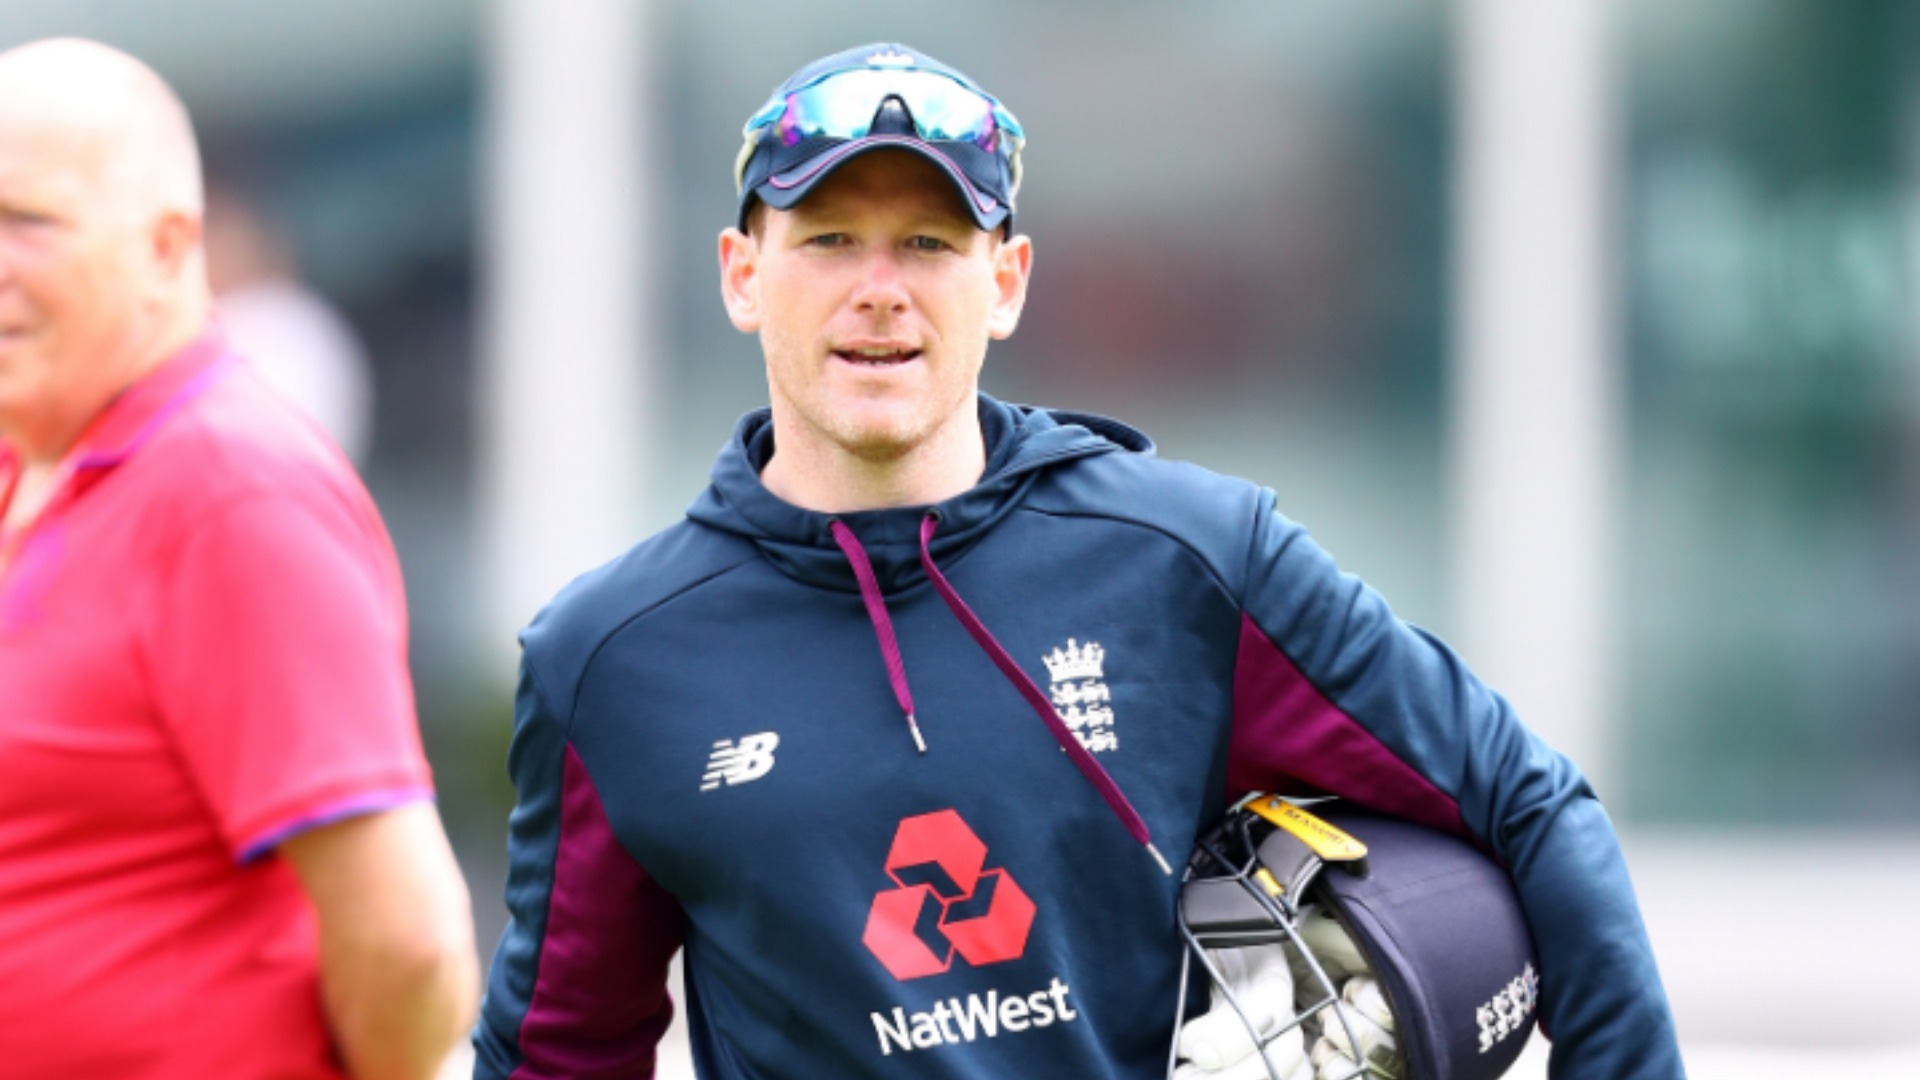 England fit, relaxed and excited ahead of Cricket World Cup final